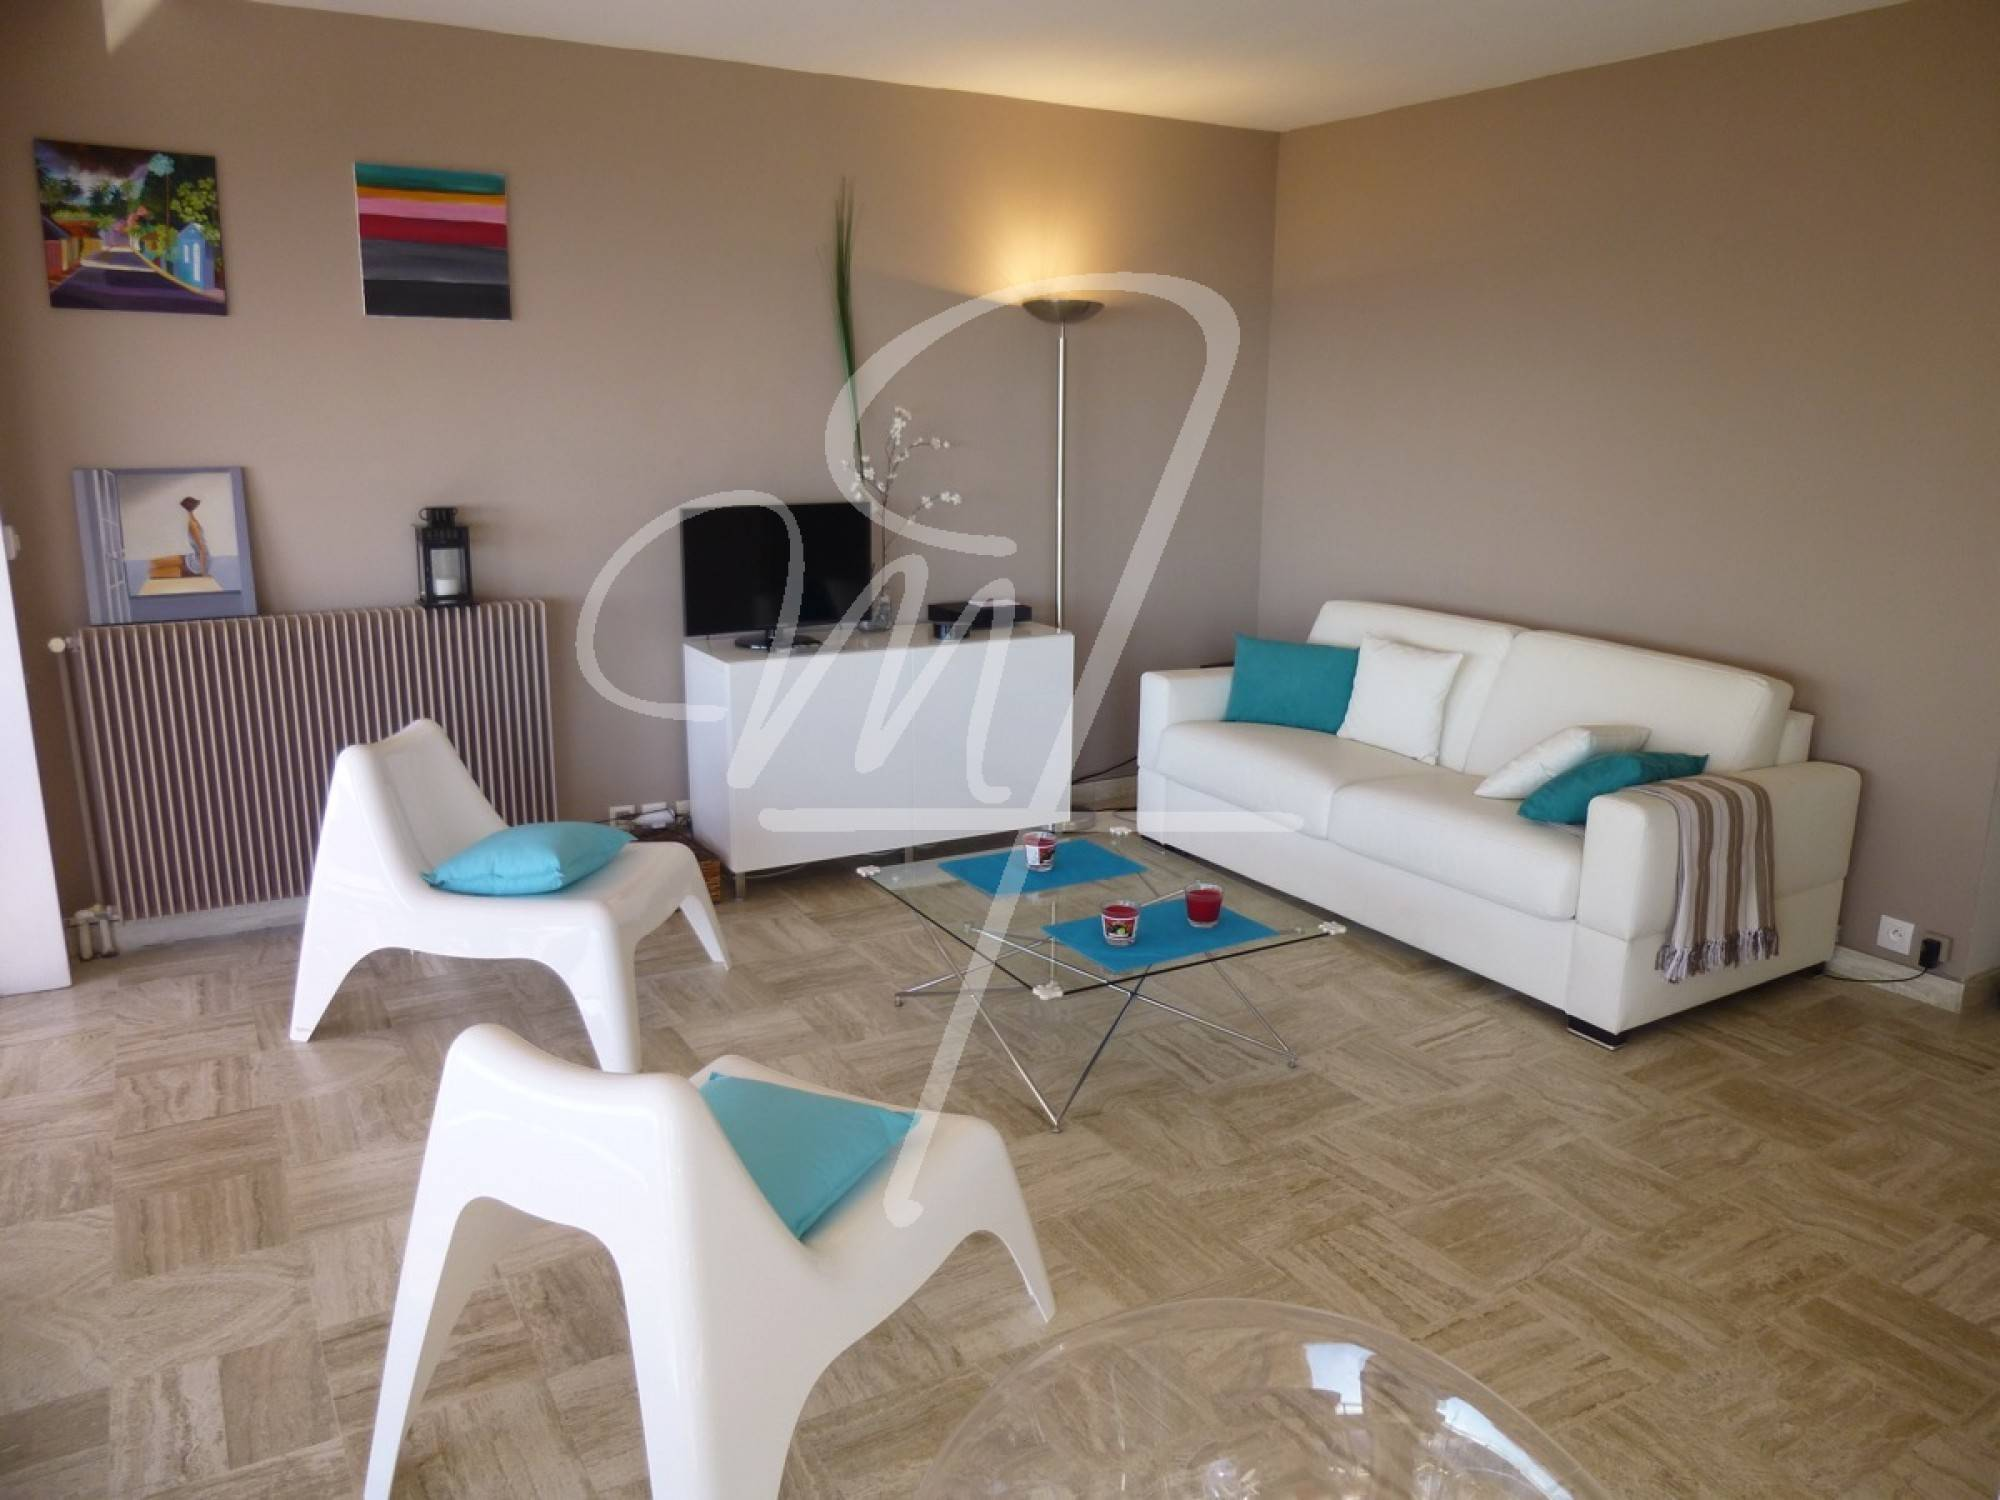 Vente Appartement T2 cassis piscine, ascenseur, vue mer